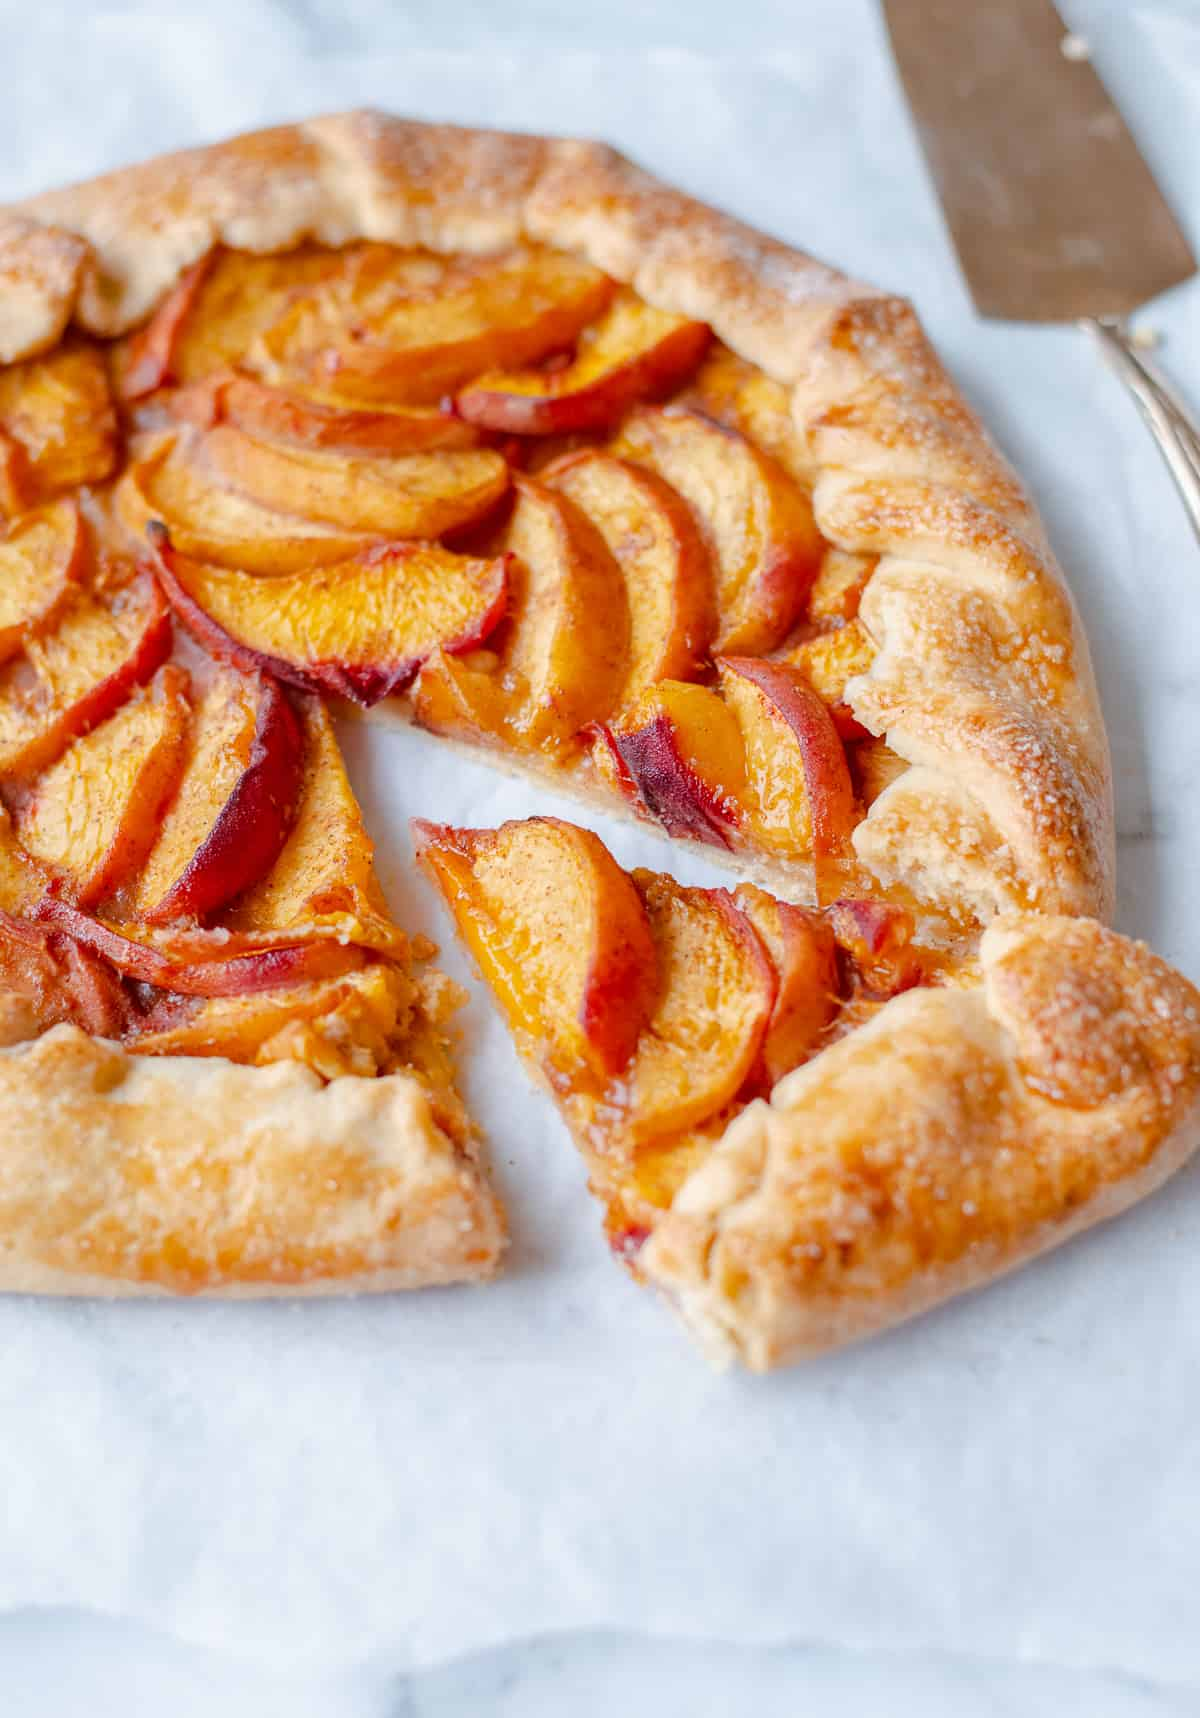 peach galette sliced with tart slice